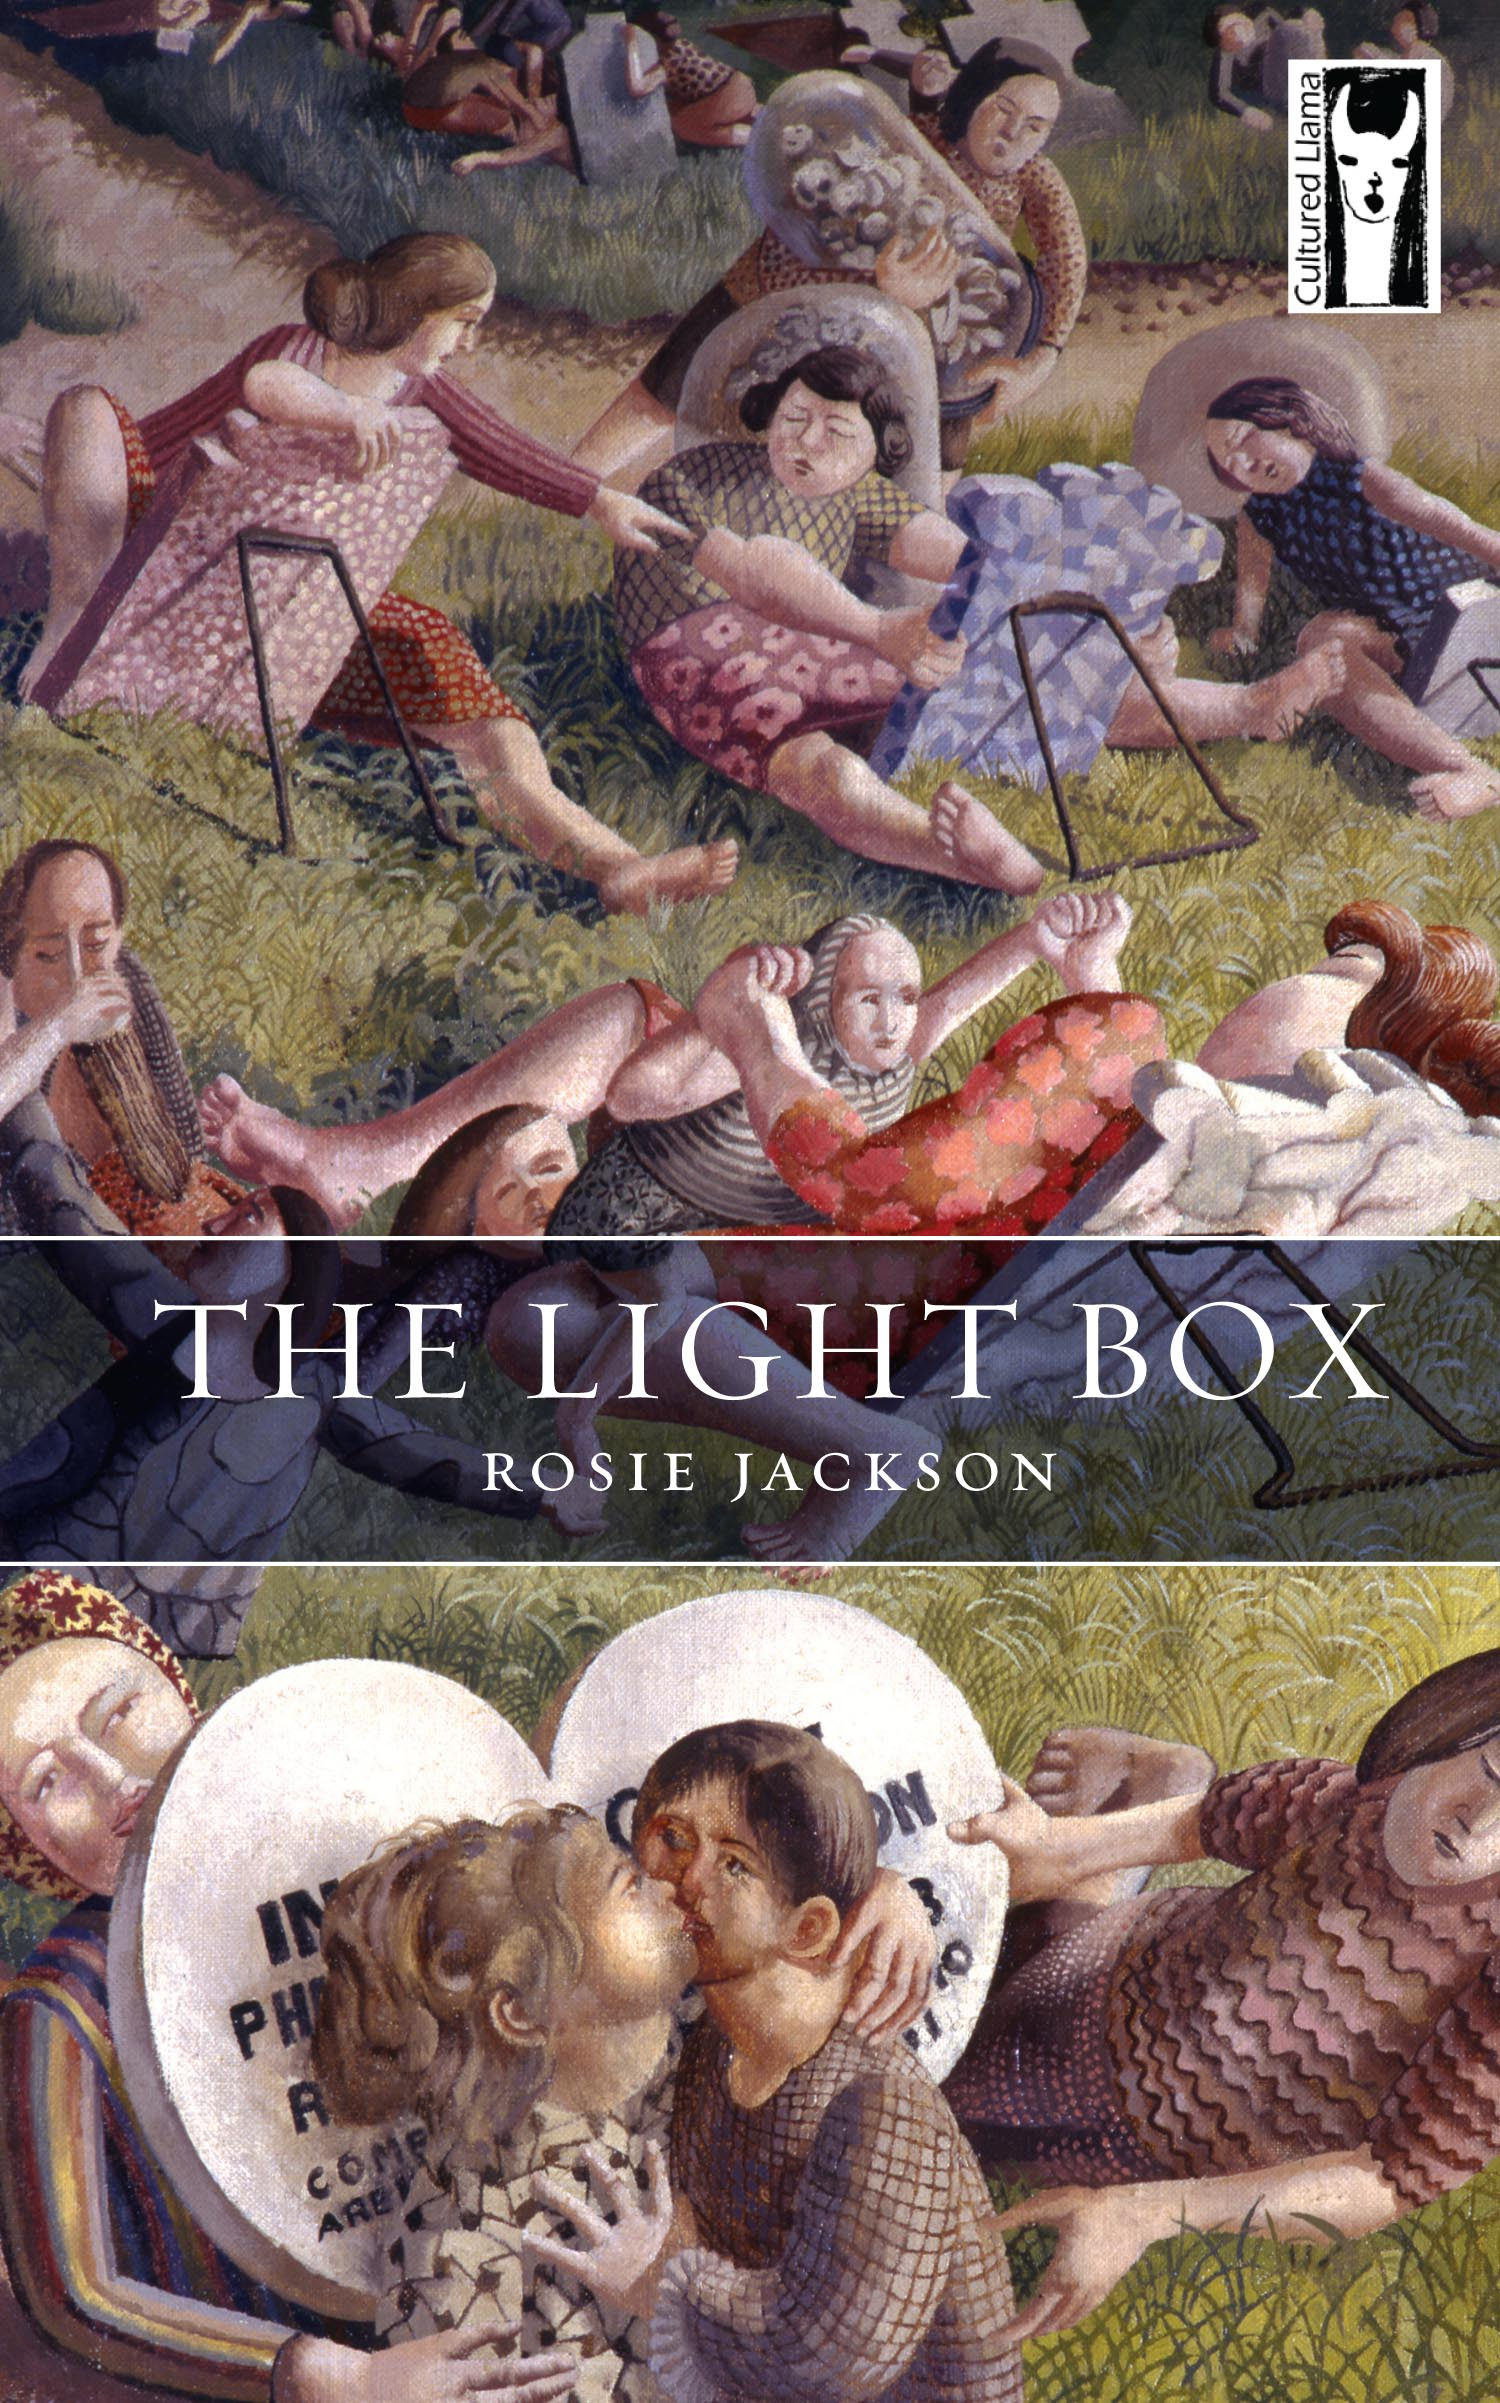 The Light Box by Rosie Jackson